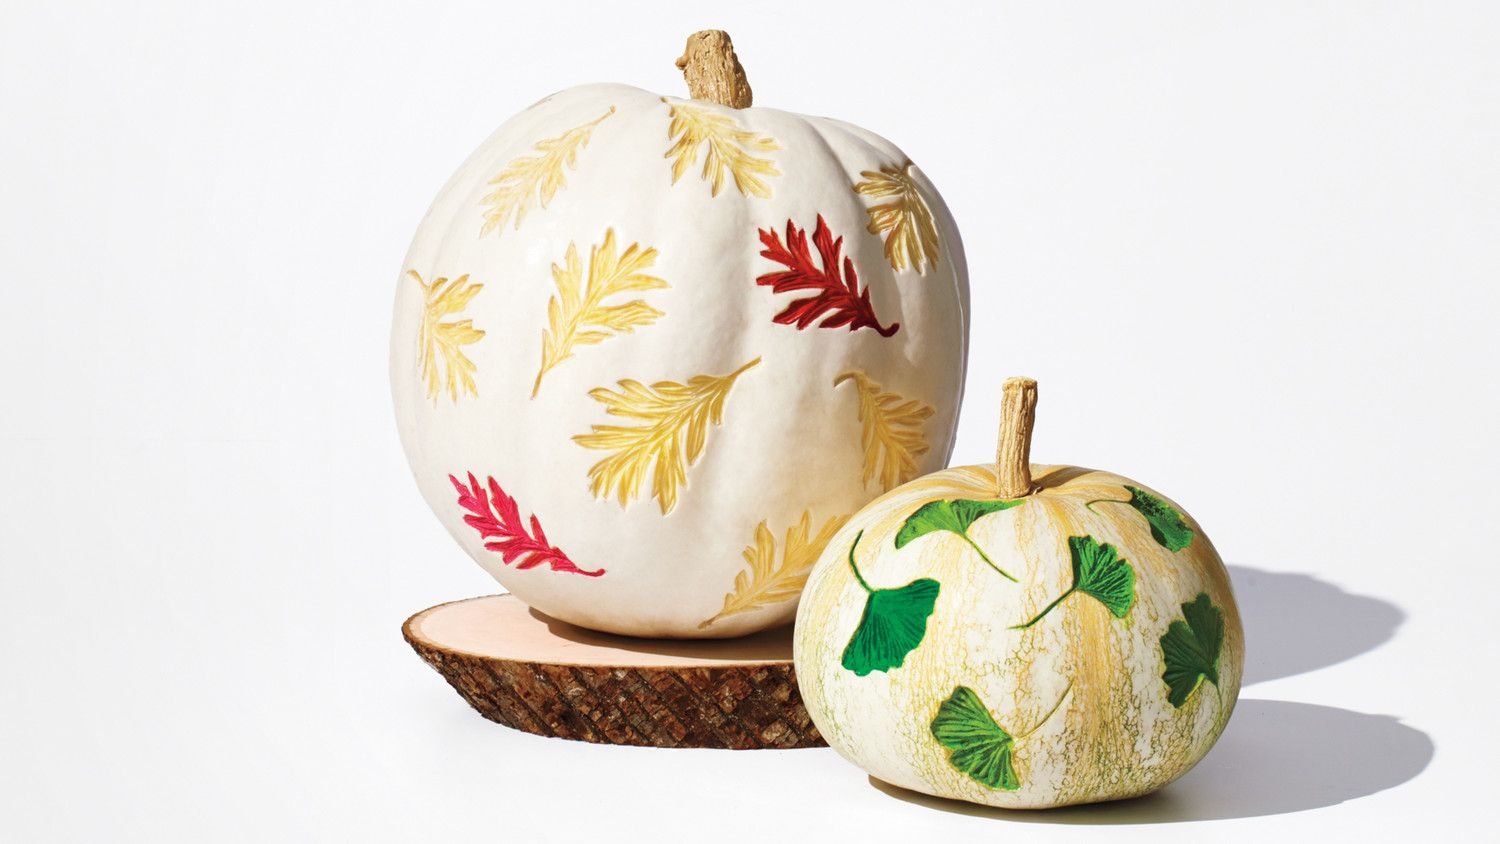 A fun new way to carve pumpkins easy etched leaf patterns